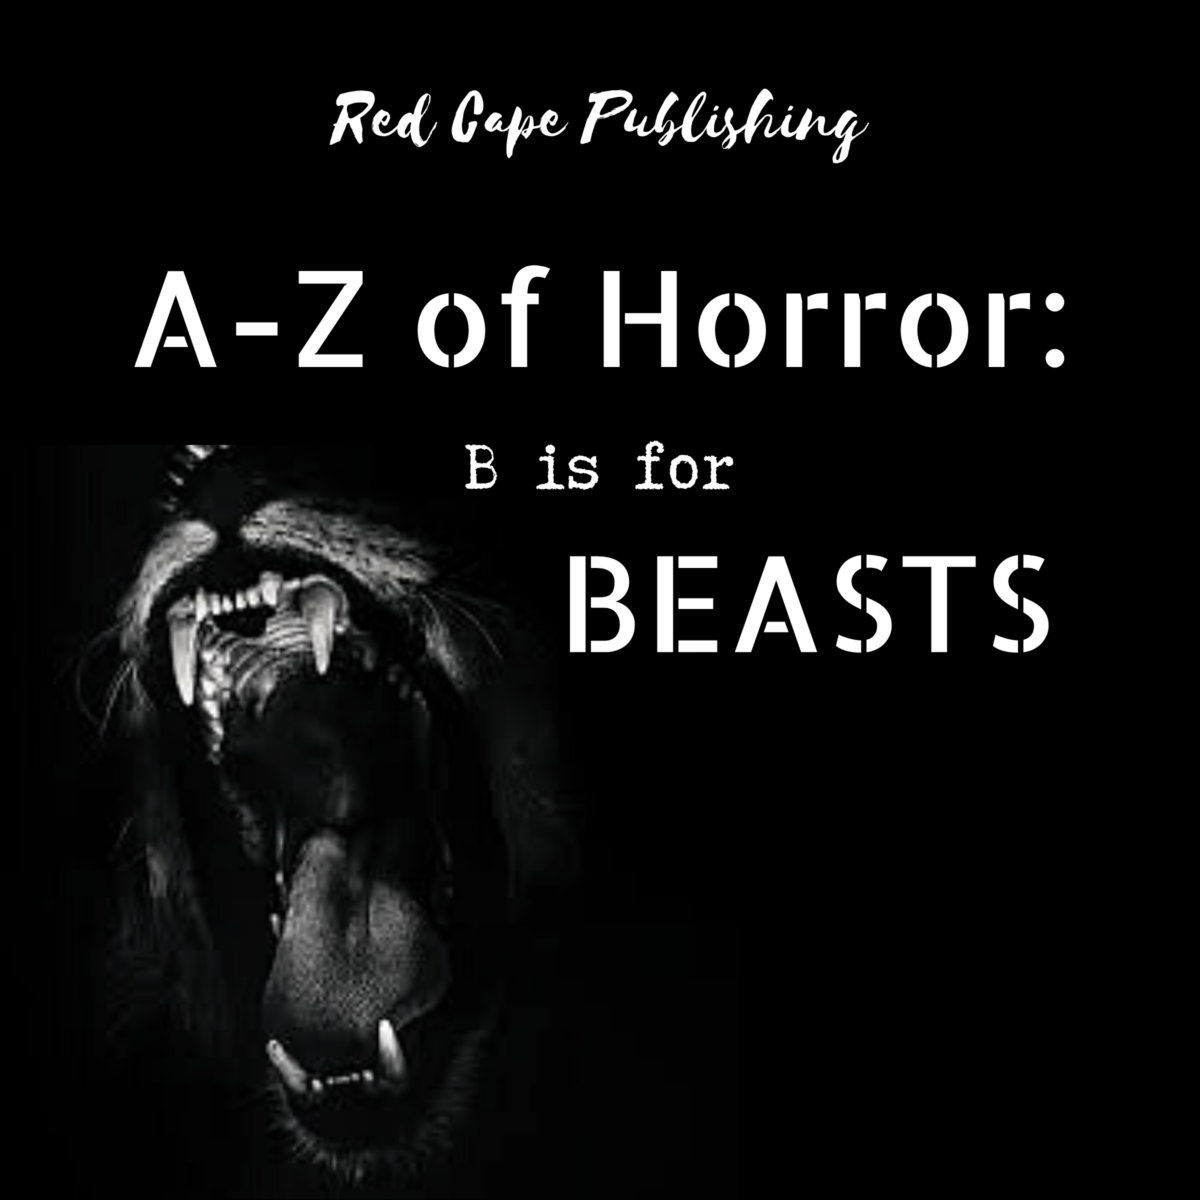 Red Cape Publishing are proud to announce the release of B is for Beasts on Audible, narrated by Bill Perry